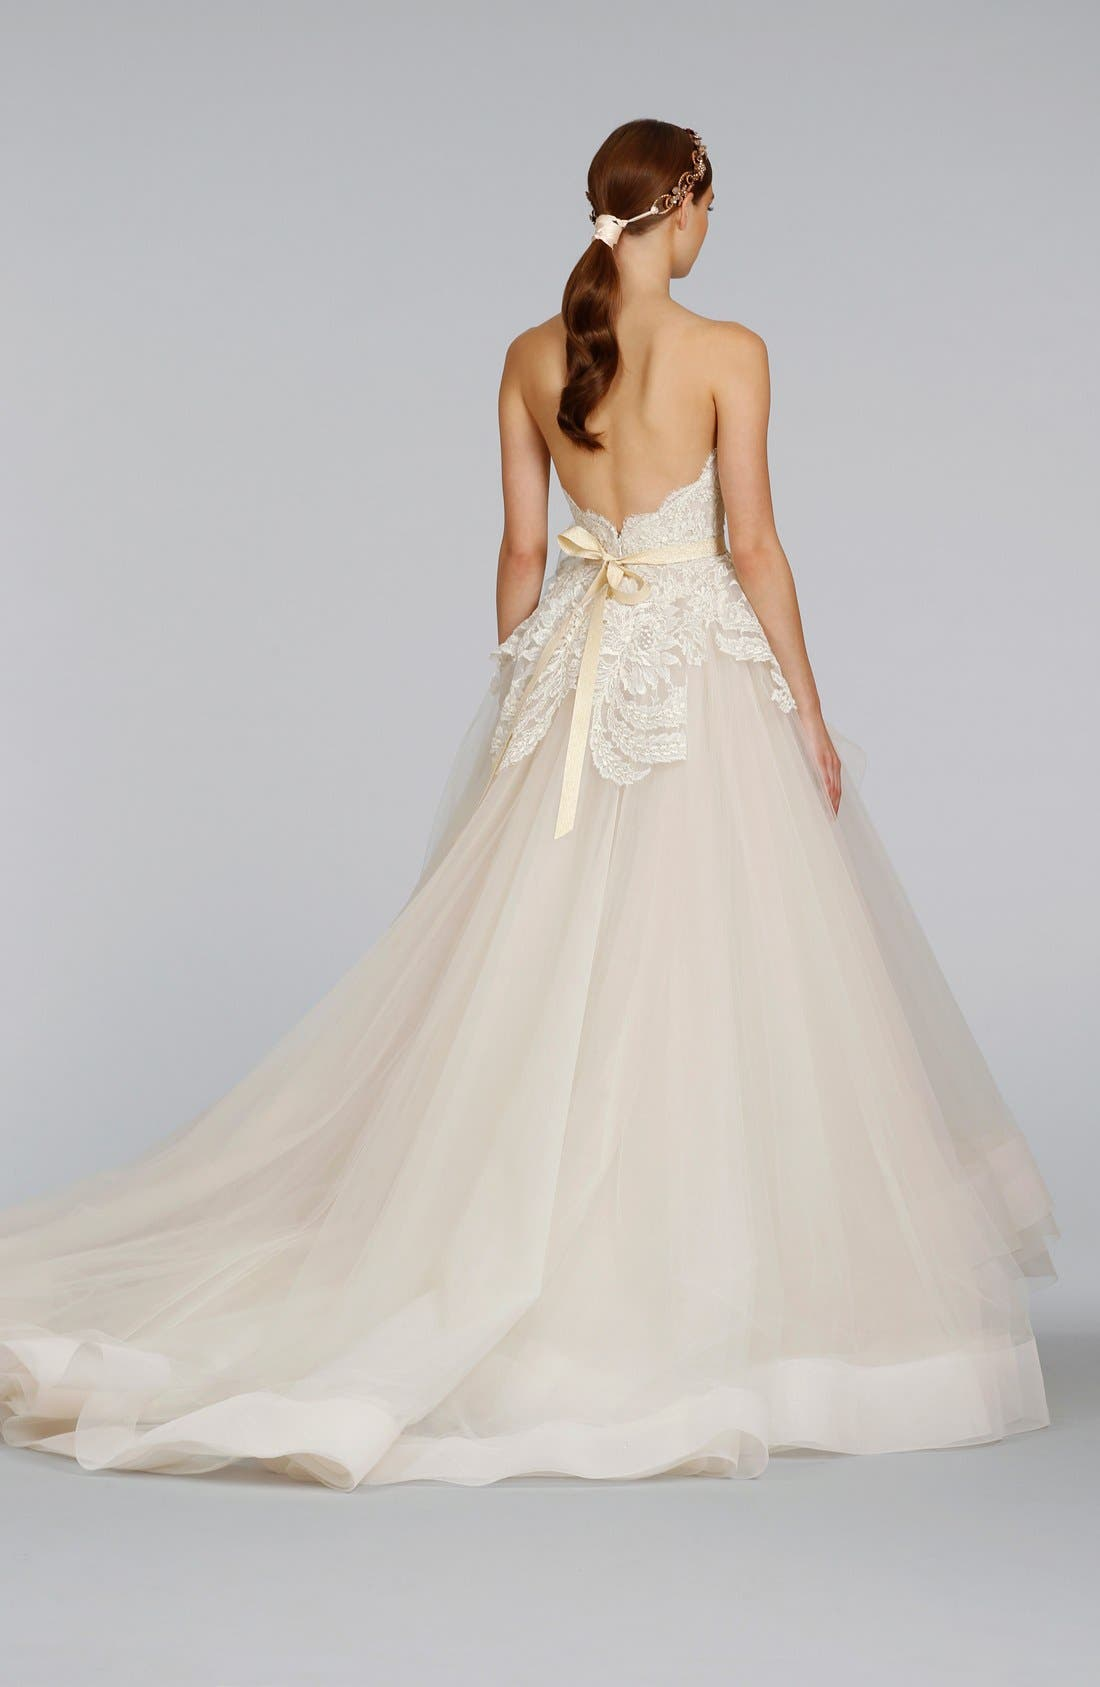 Strapless Lace & Layered Tulle Ballgown,                             Alternate thumbnail 3, color,                             IVORY/GOLD/CHAMPAGNE